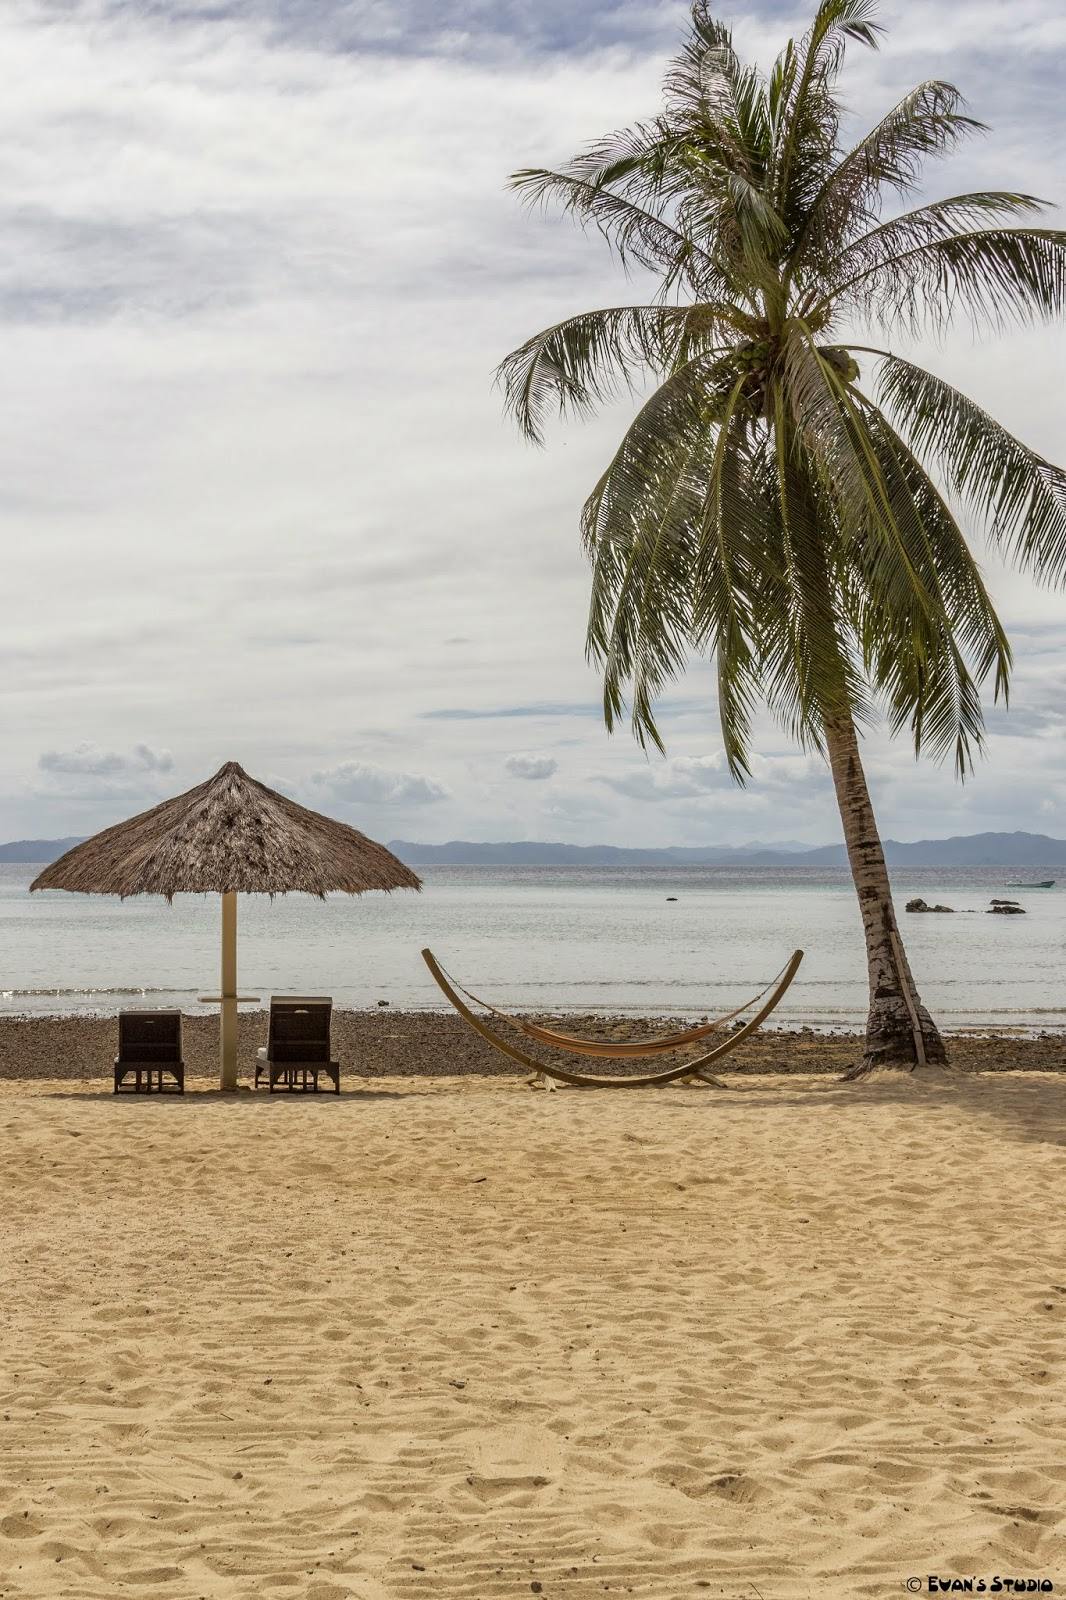 The relaxing beach view from Apulit Island Resort in the Philippines.